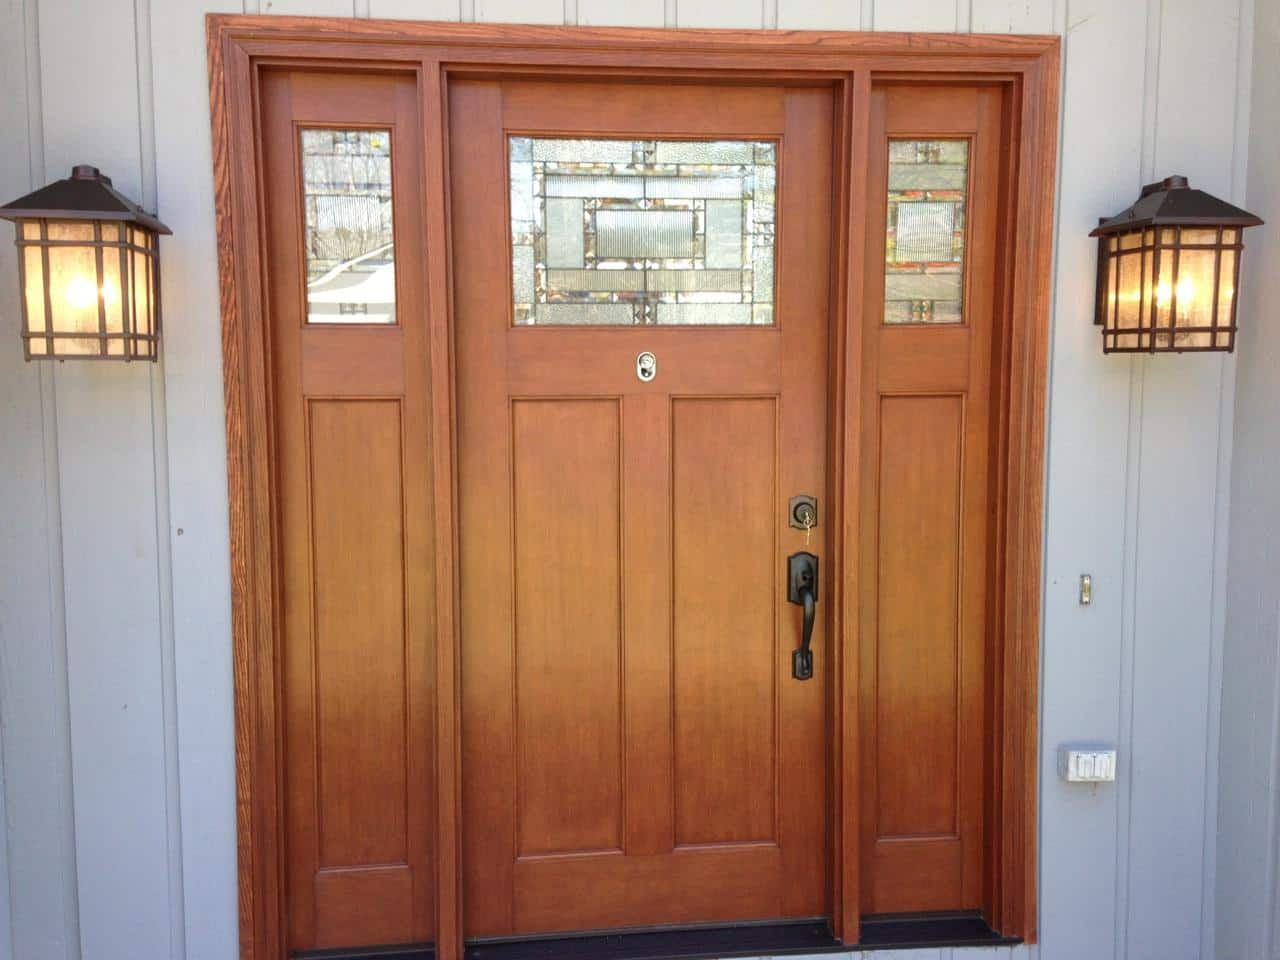 960 #7F3E26 Albany Door Company Inc. Fiberglass Doors picture/photo Exterior Fiberglass Doors 39991280